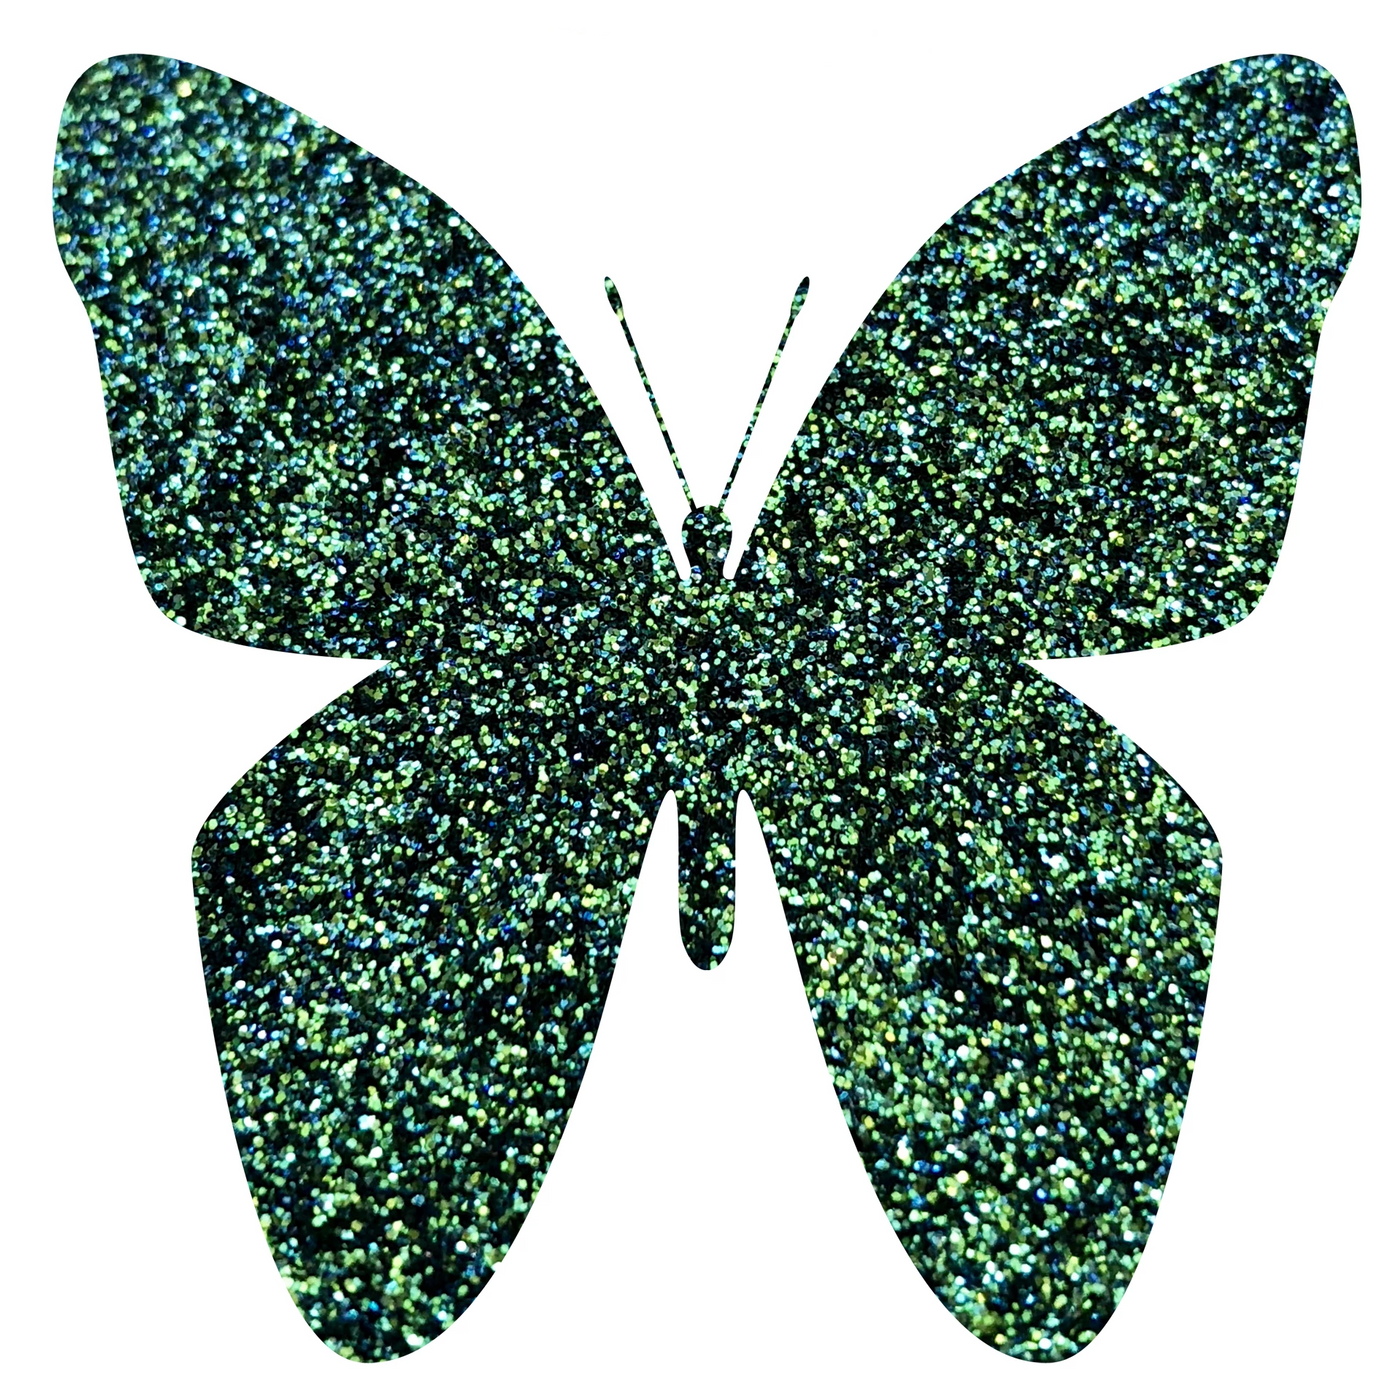 Ultrafine Glitter Irish Isle G1141